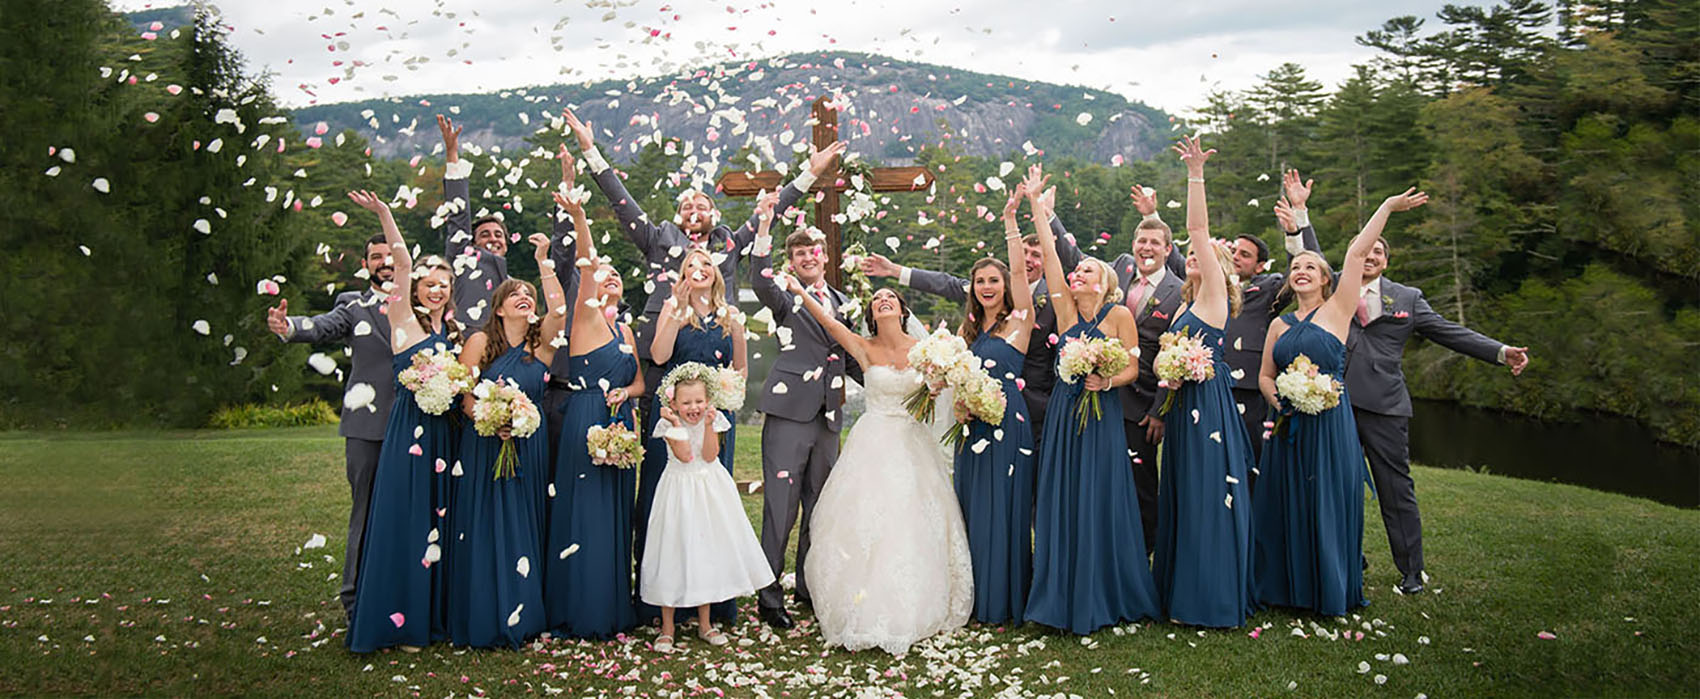 A wedding party grabs a handful of pink and white rose petals and threw them into the air in celebration.